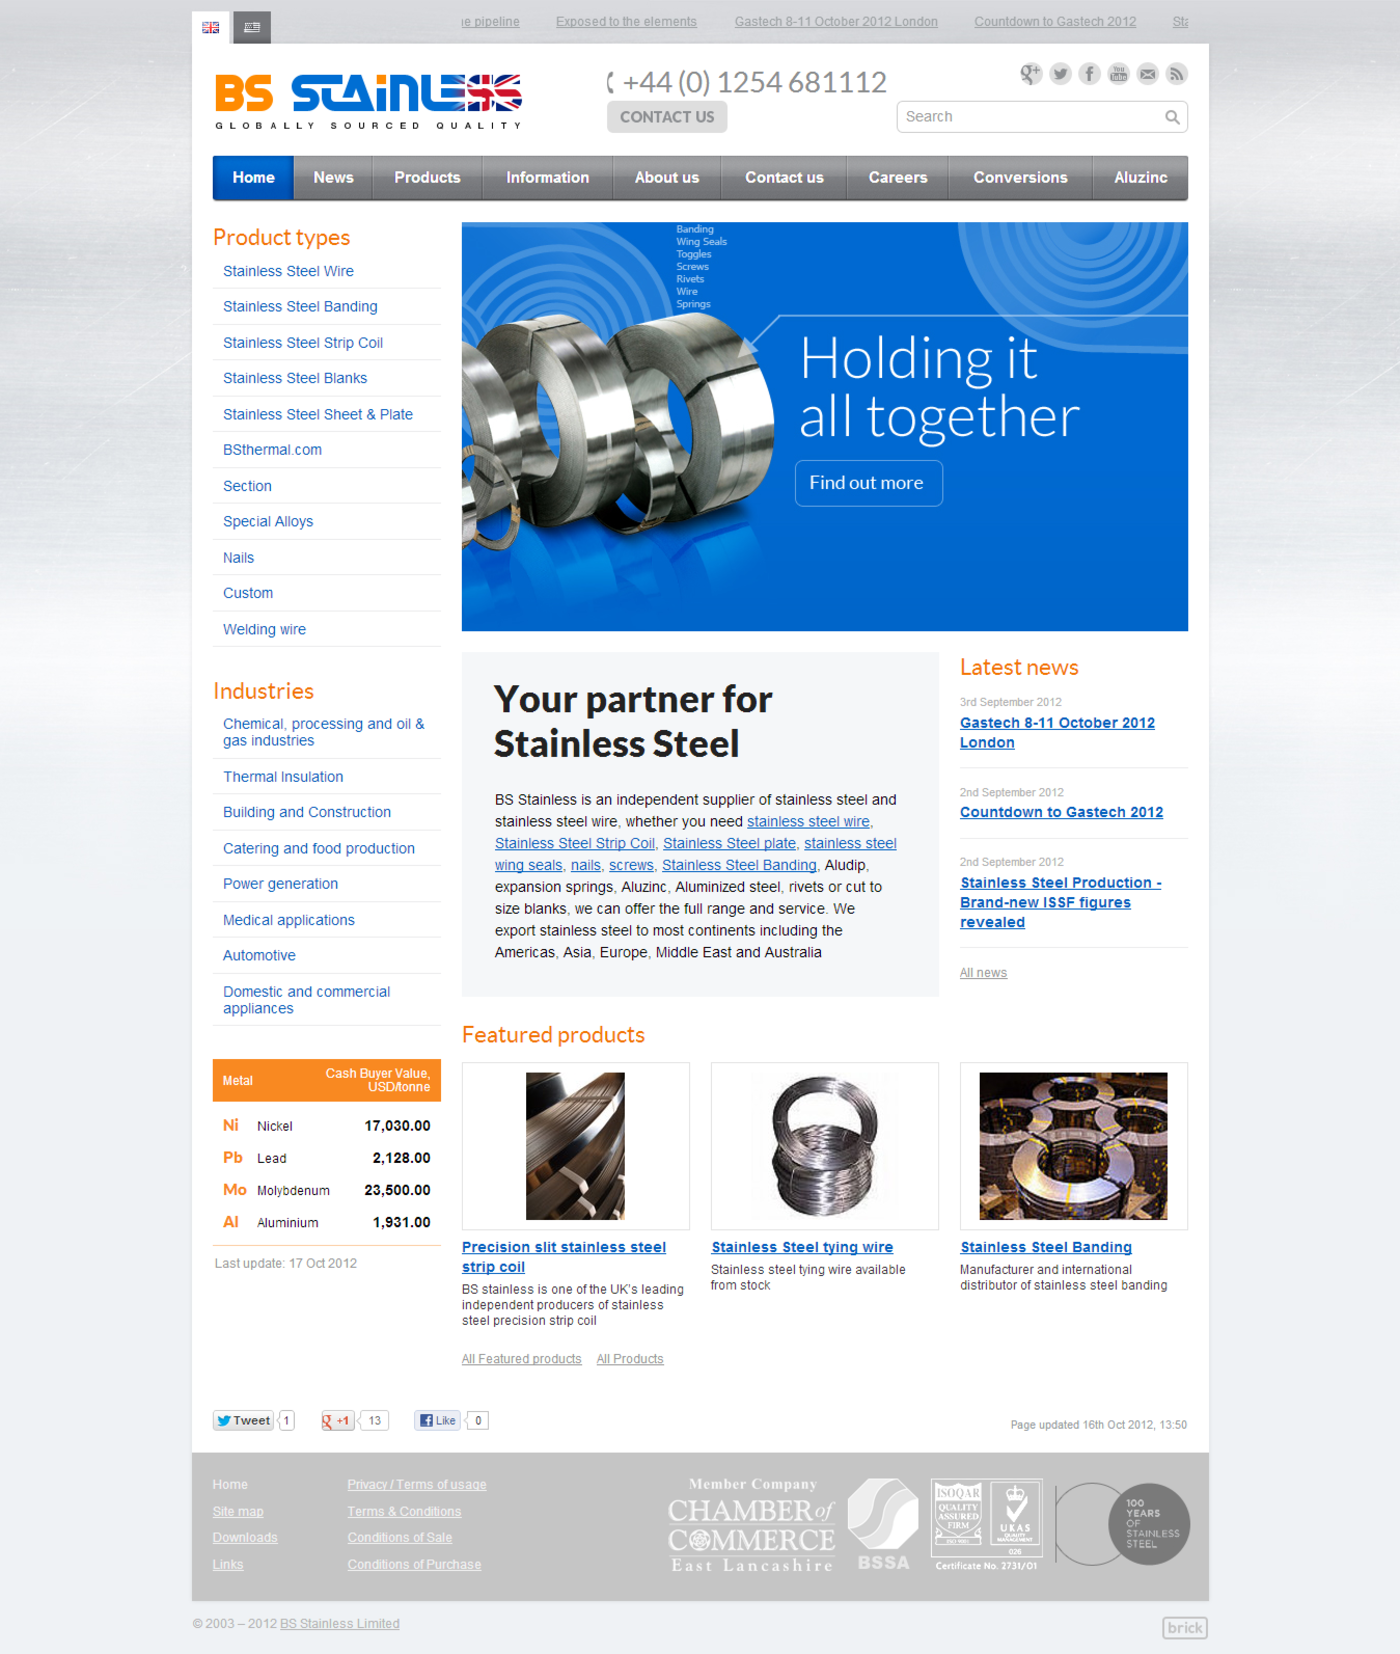 BS Stainless 2012 Homepage